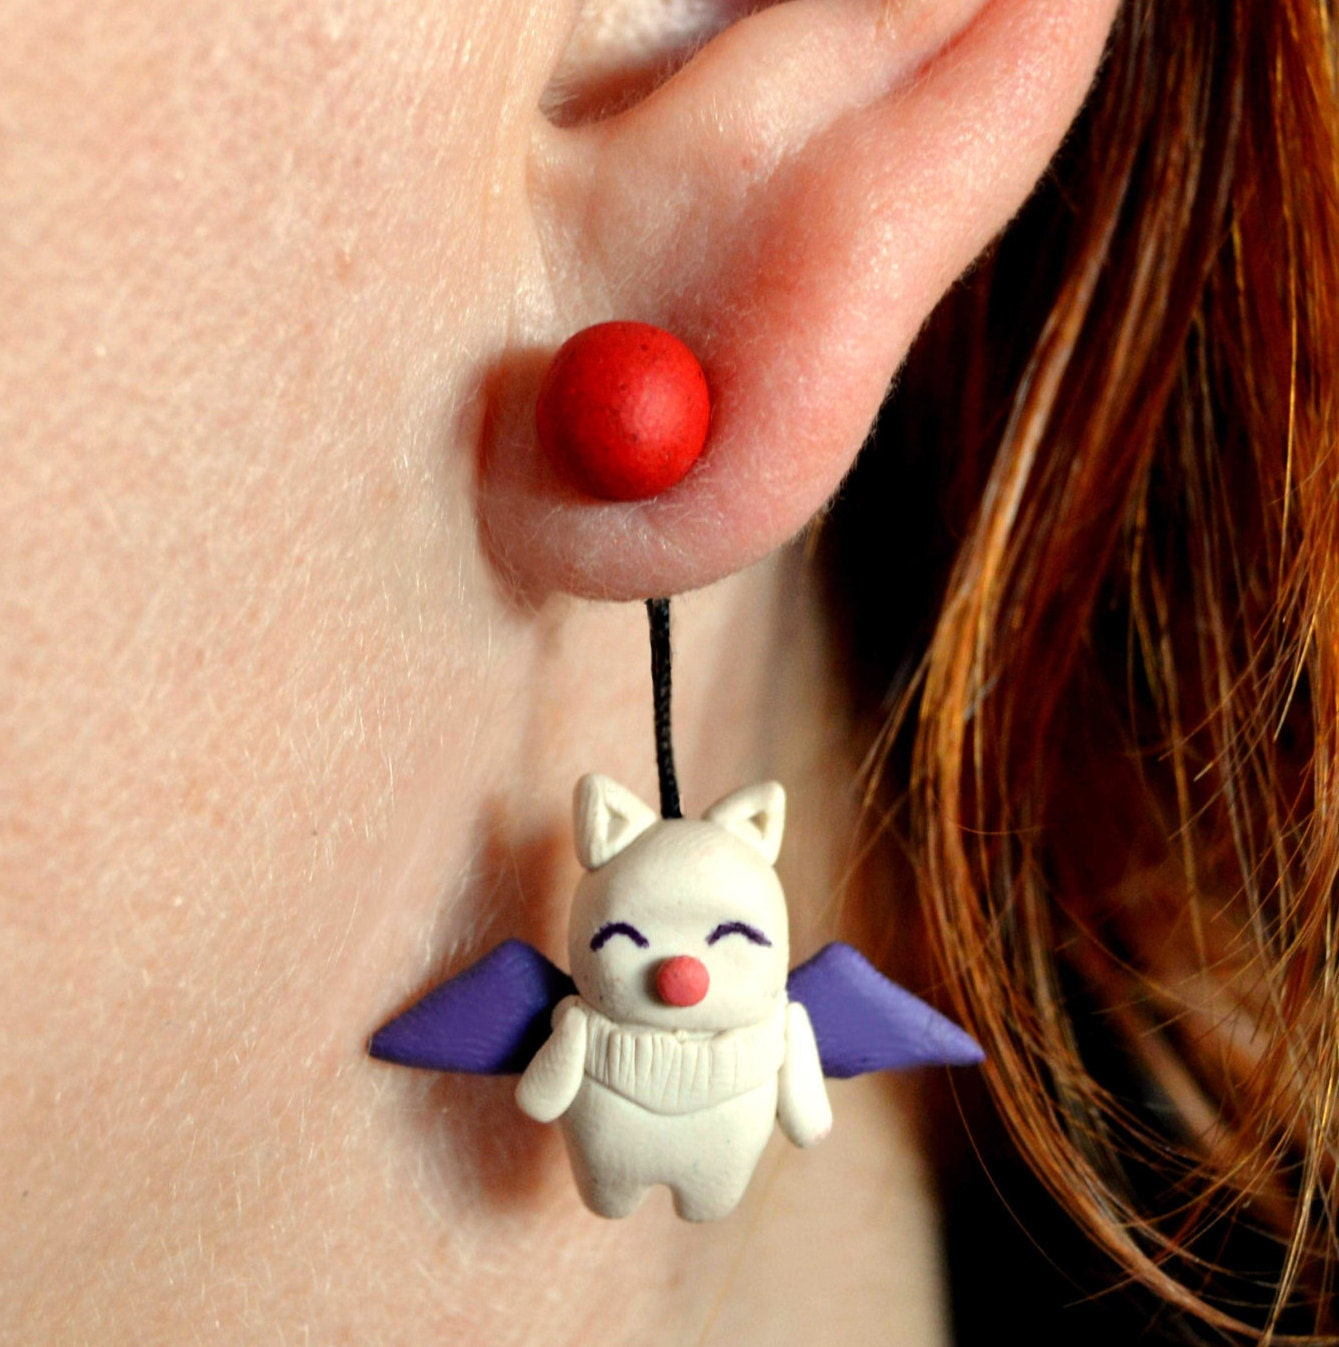 ffxi earrings moogle earring from and kingdom hearts select 1 4156